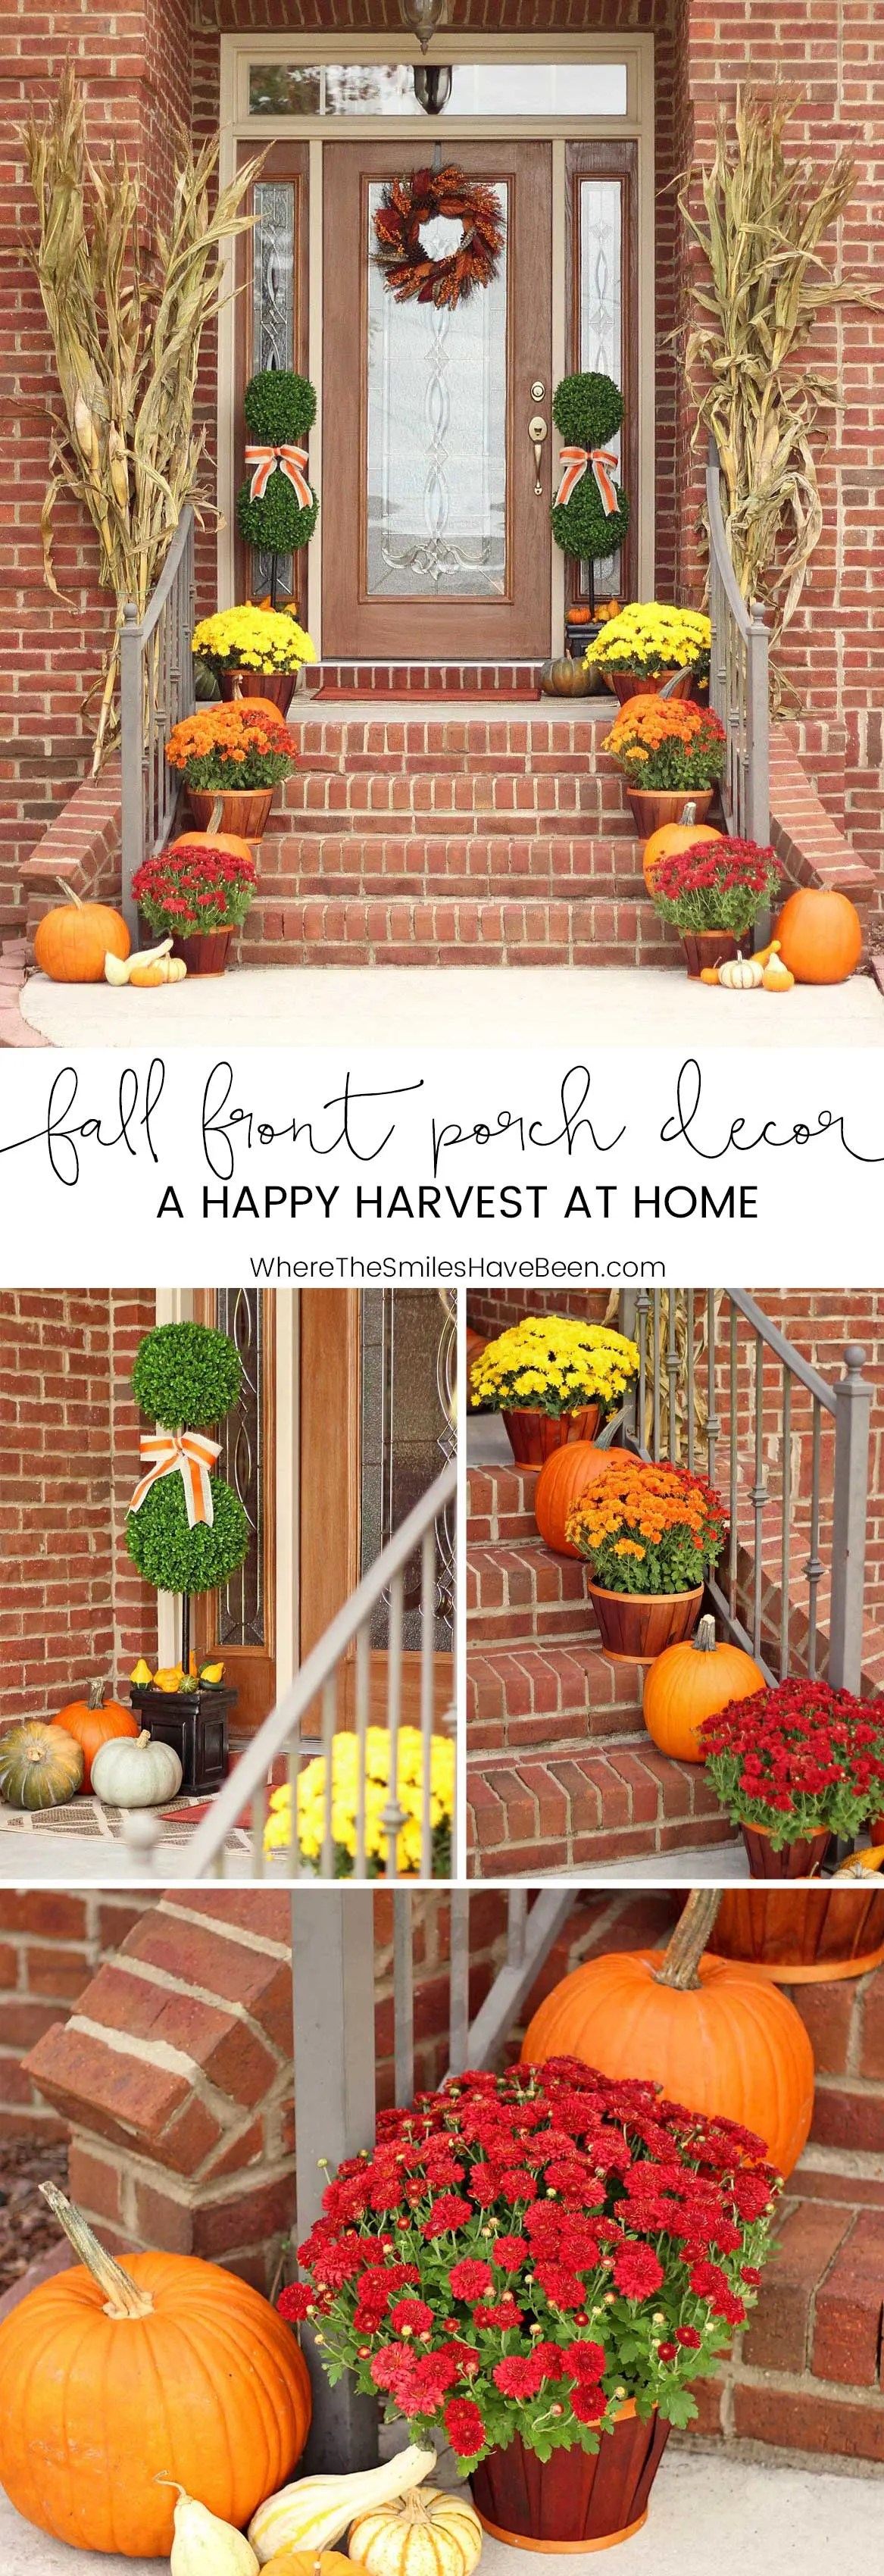 Fall front porch decor our happy harvest at home for Harvest decorations for the home